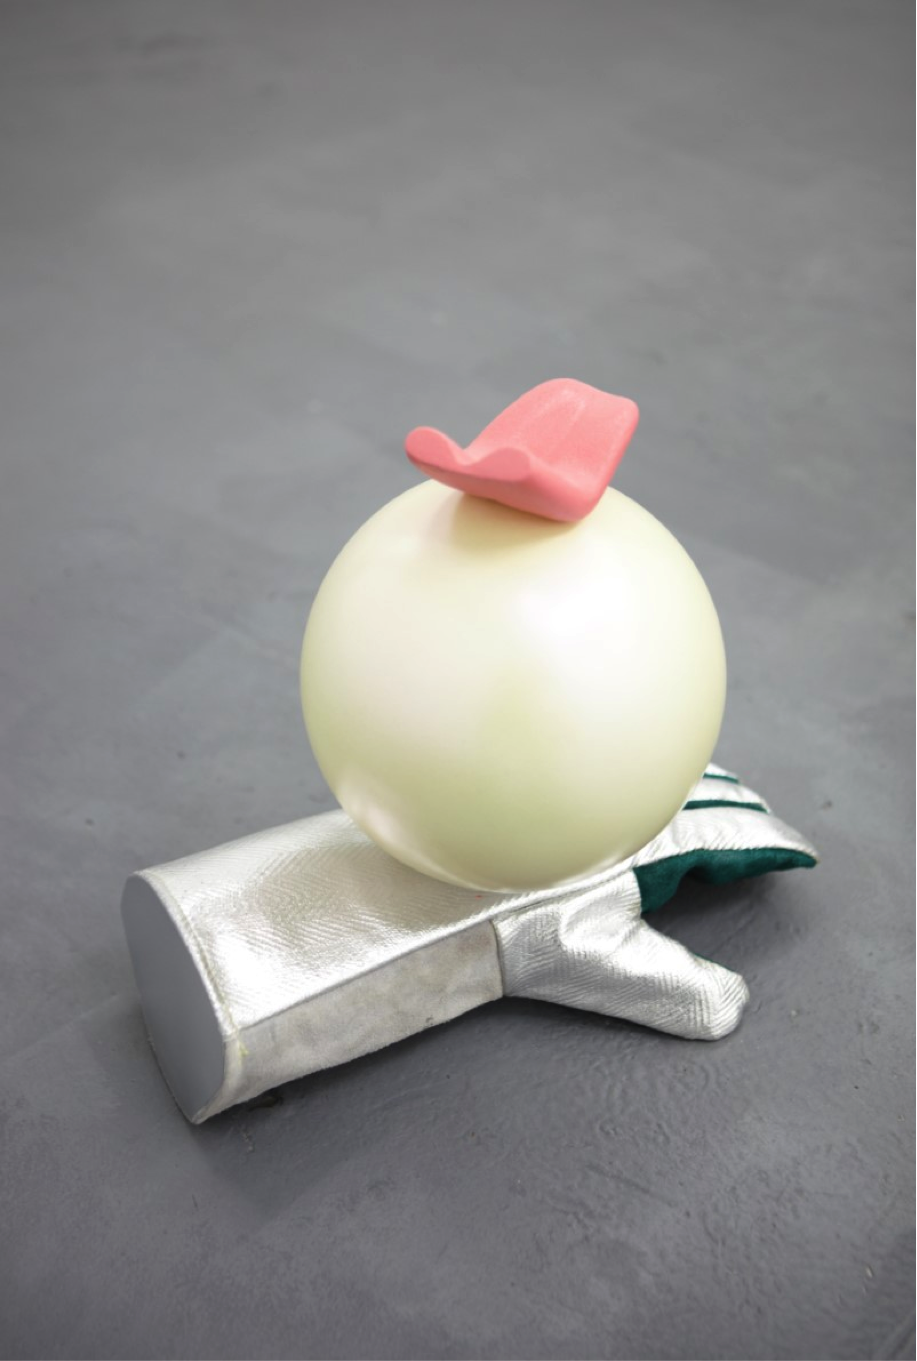 Richard Hughes .I Don't Want To Know About Evil.   2017     Found object, Plaster, 2 part Epoxy Resin, Primer, Spray Paint, Unfired Clay, Metal rod. 420X170X250mm